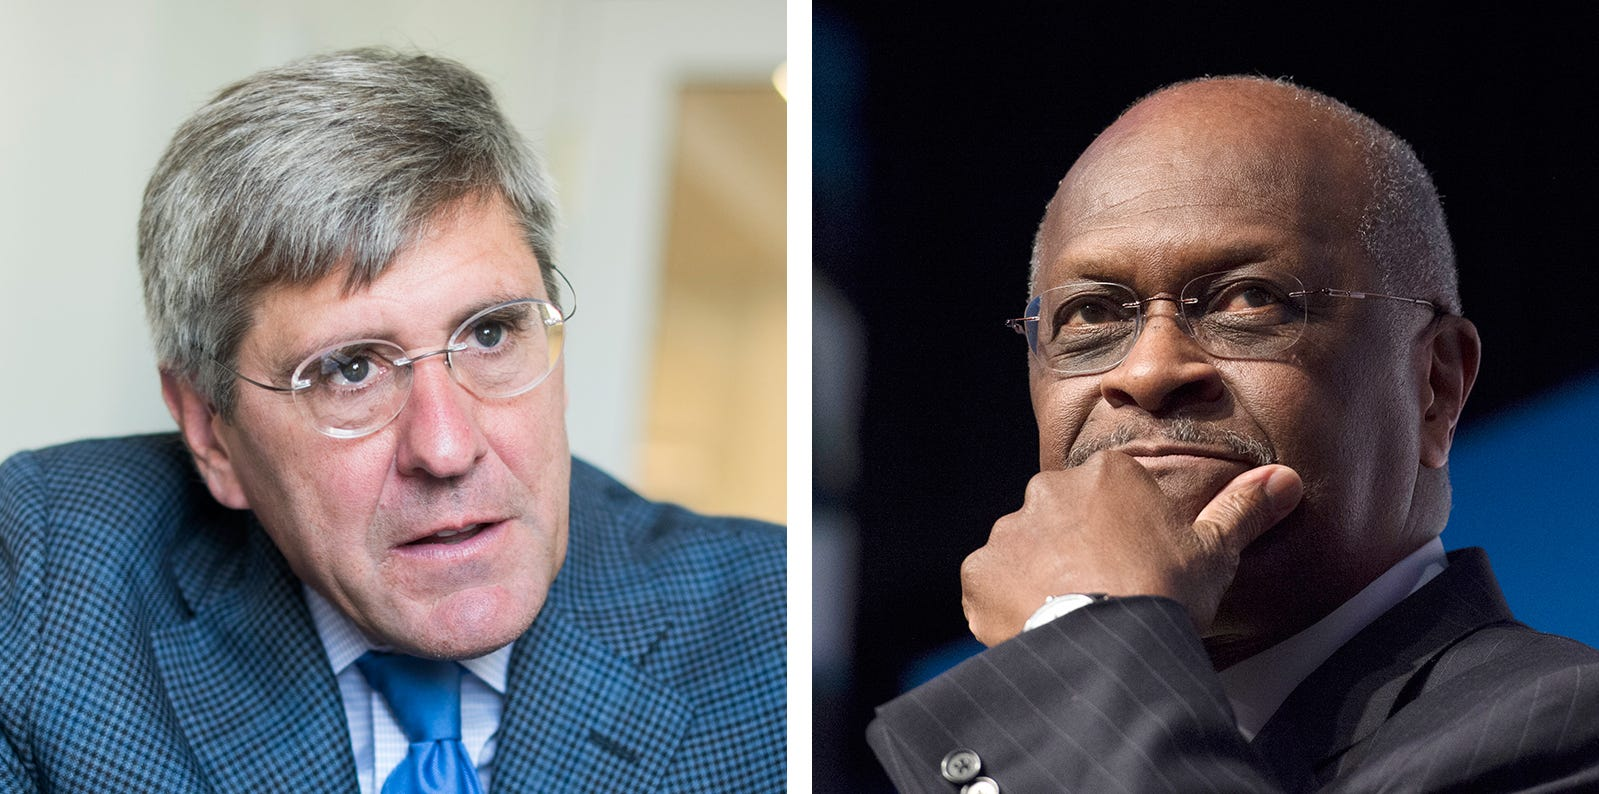 Why Donald Trump's Fed picks Stephen Moore and Herman Cain have caused such a ruckus